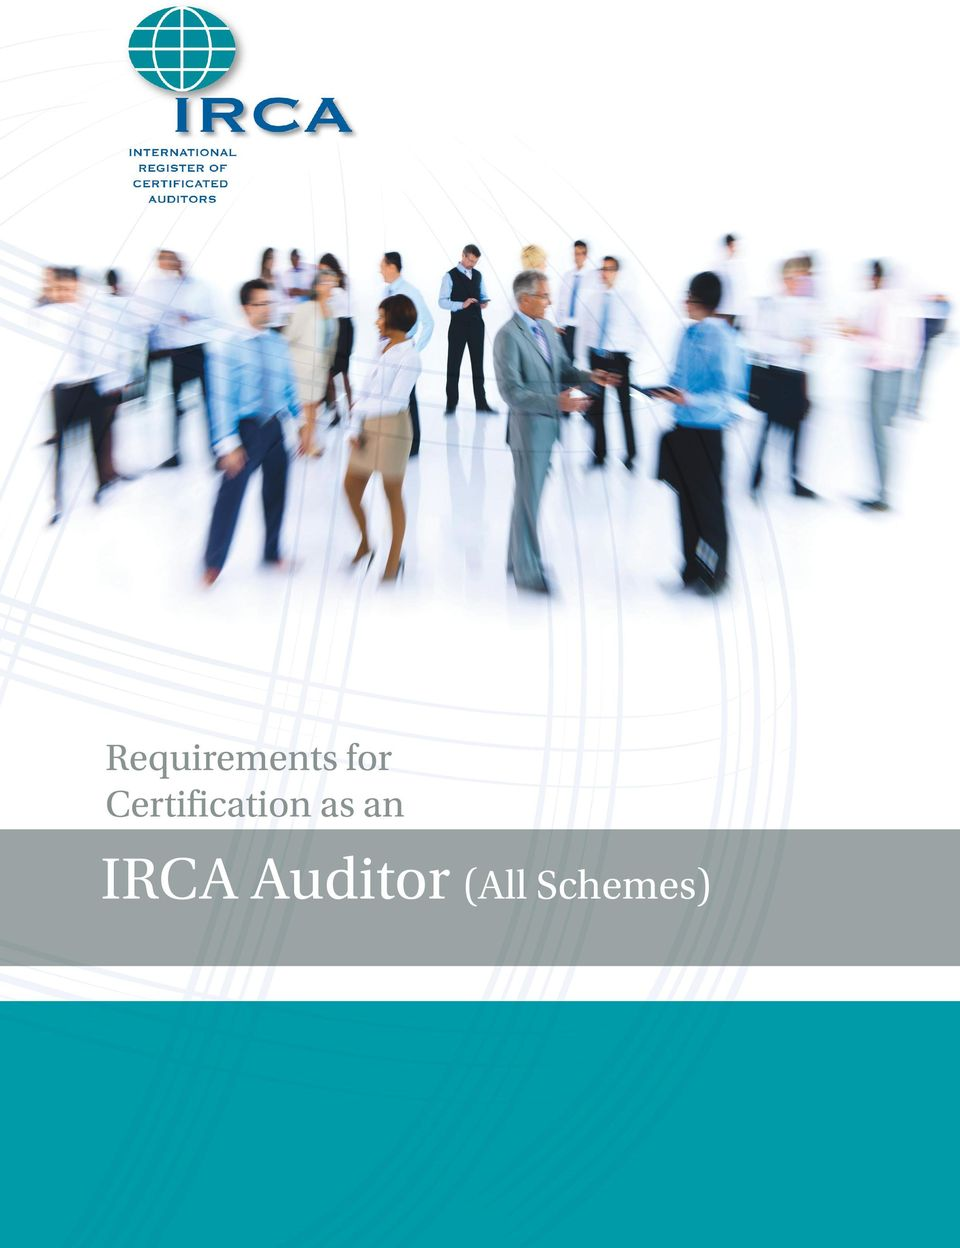 Requirements for certification as an. Irca auditor (all schemes) pdf.